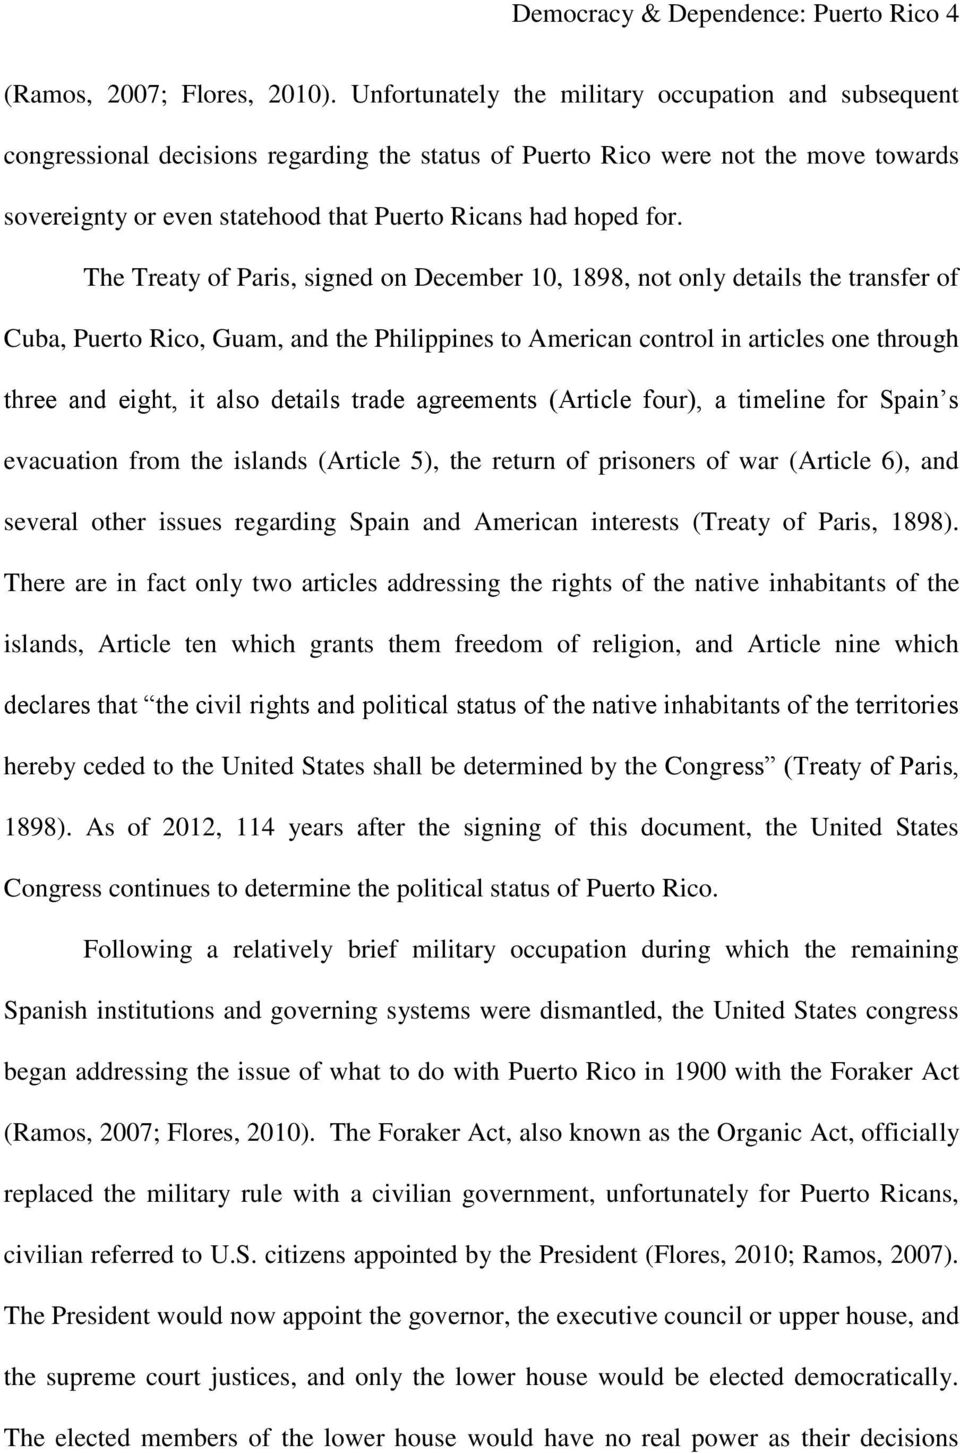 for. The Treaty of Paris, signed on December 10, 1898, not only details the transfer of Cuba, Puerto Rico, Guam, and the Philippines to American control in articles one through three and eight, it